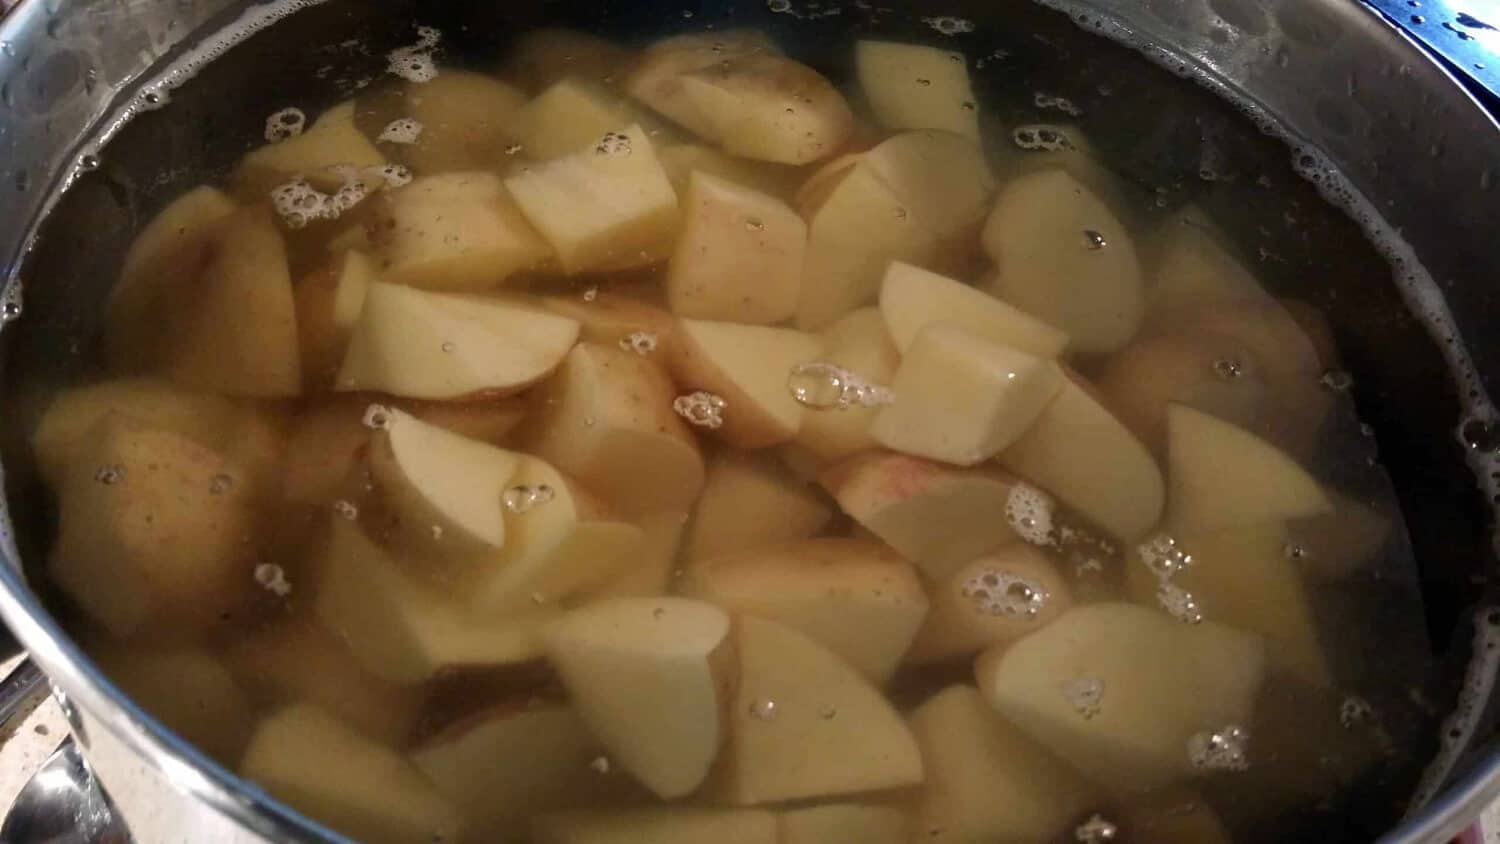 roughly chopped potatoes in a pan of salt water